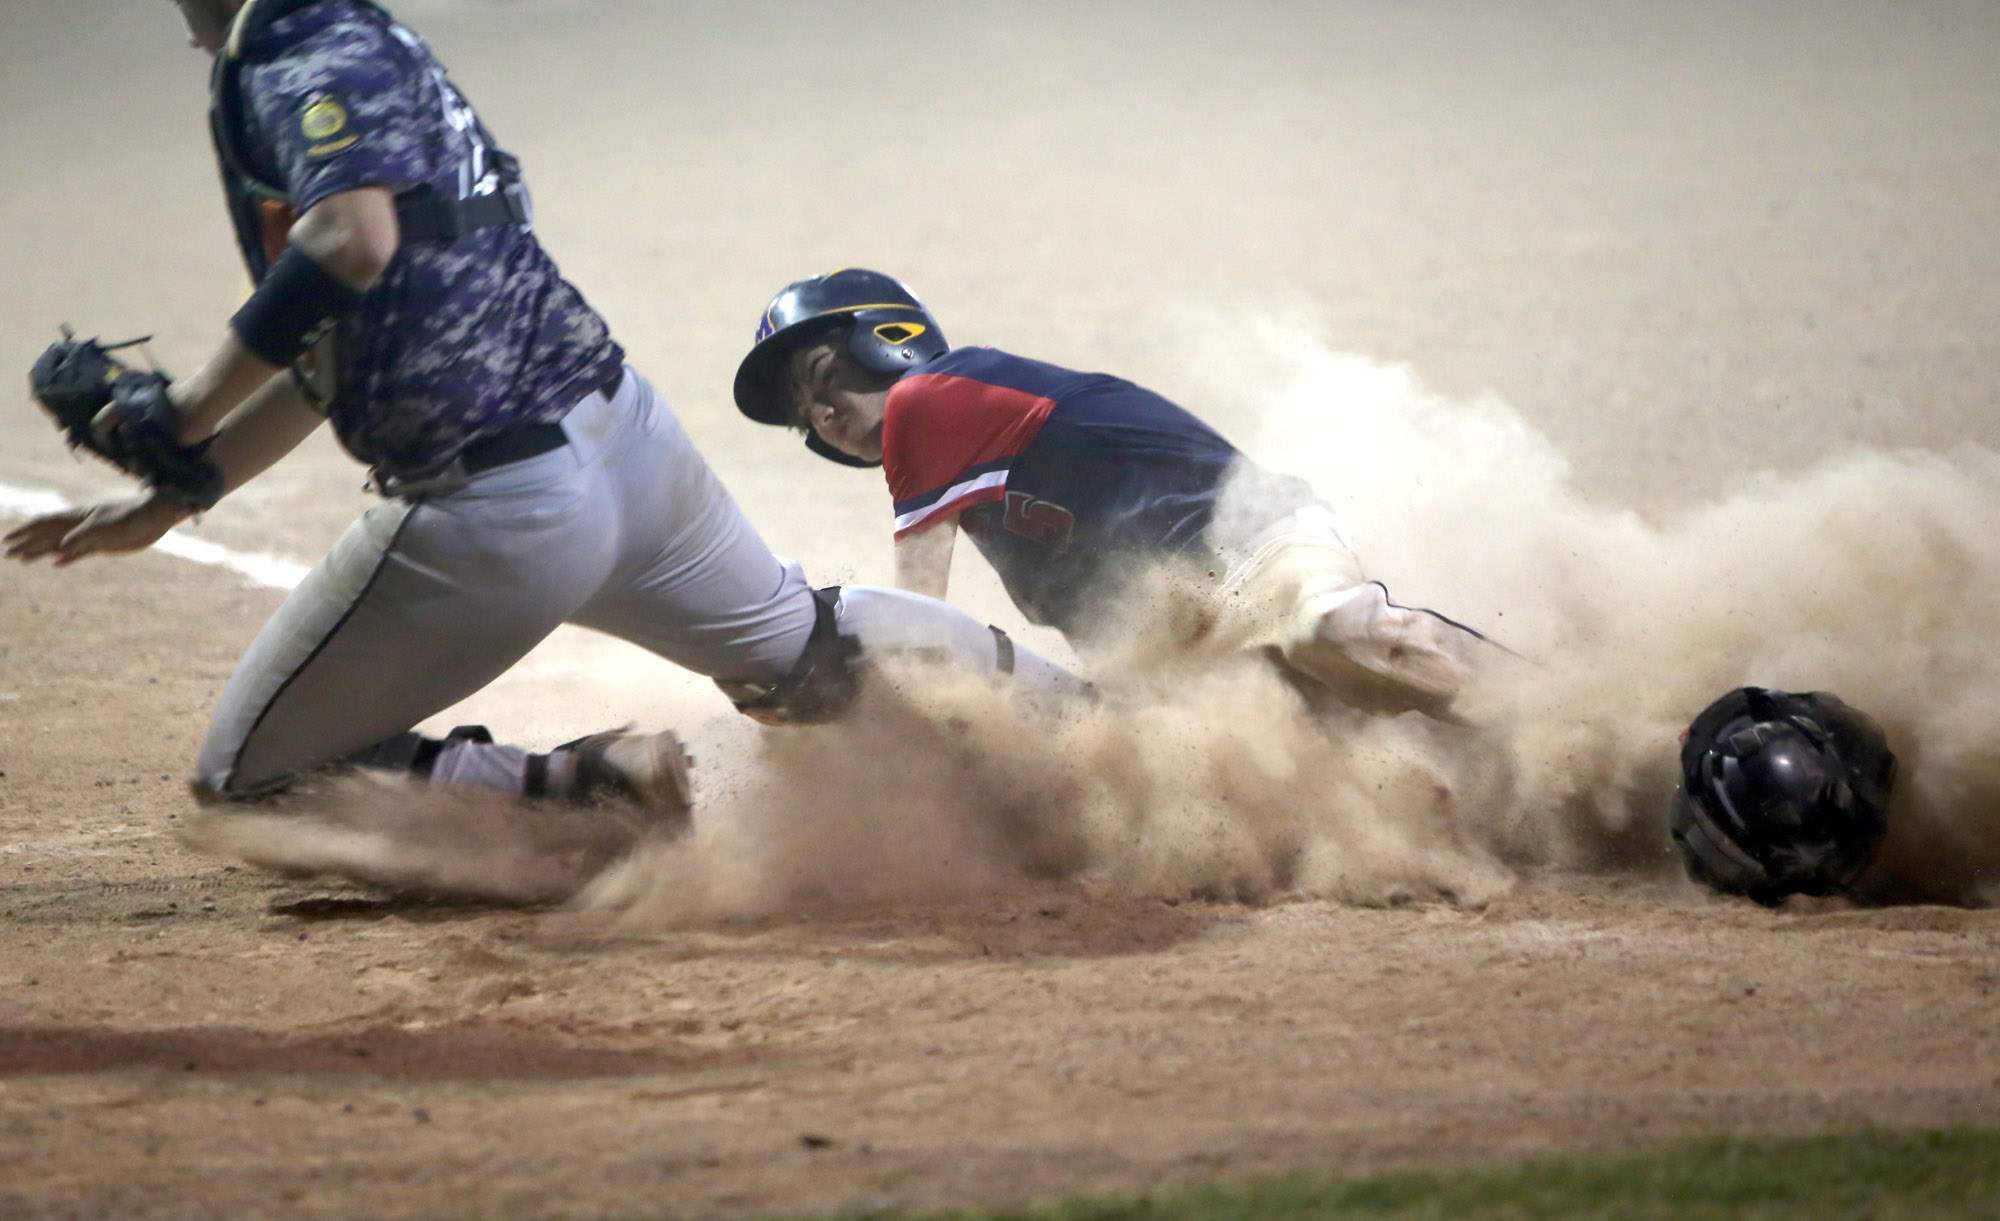 Brendan Soldner slides into home plate with the winning run in the ninth inning Monday night.